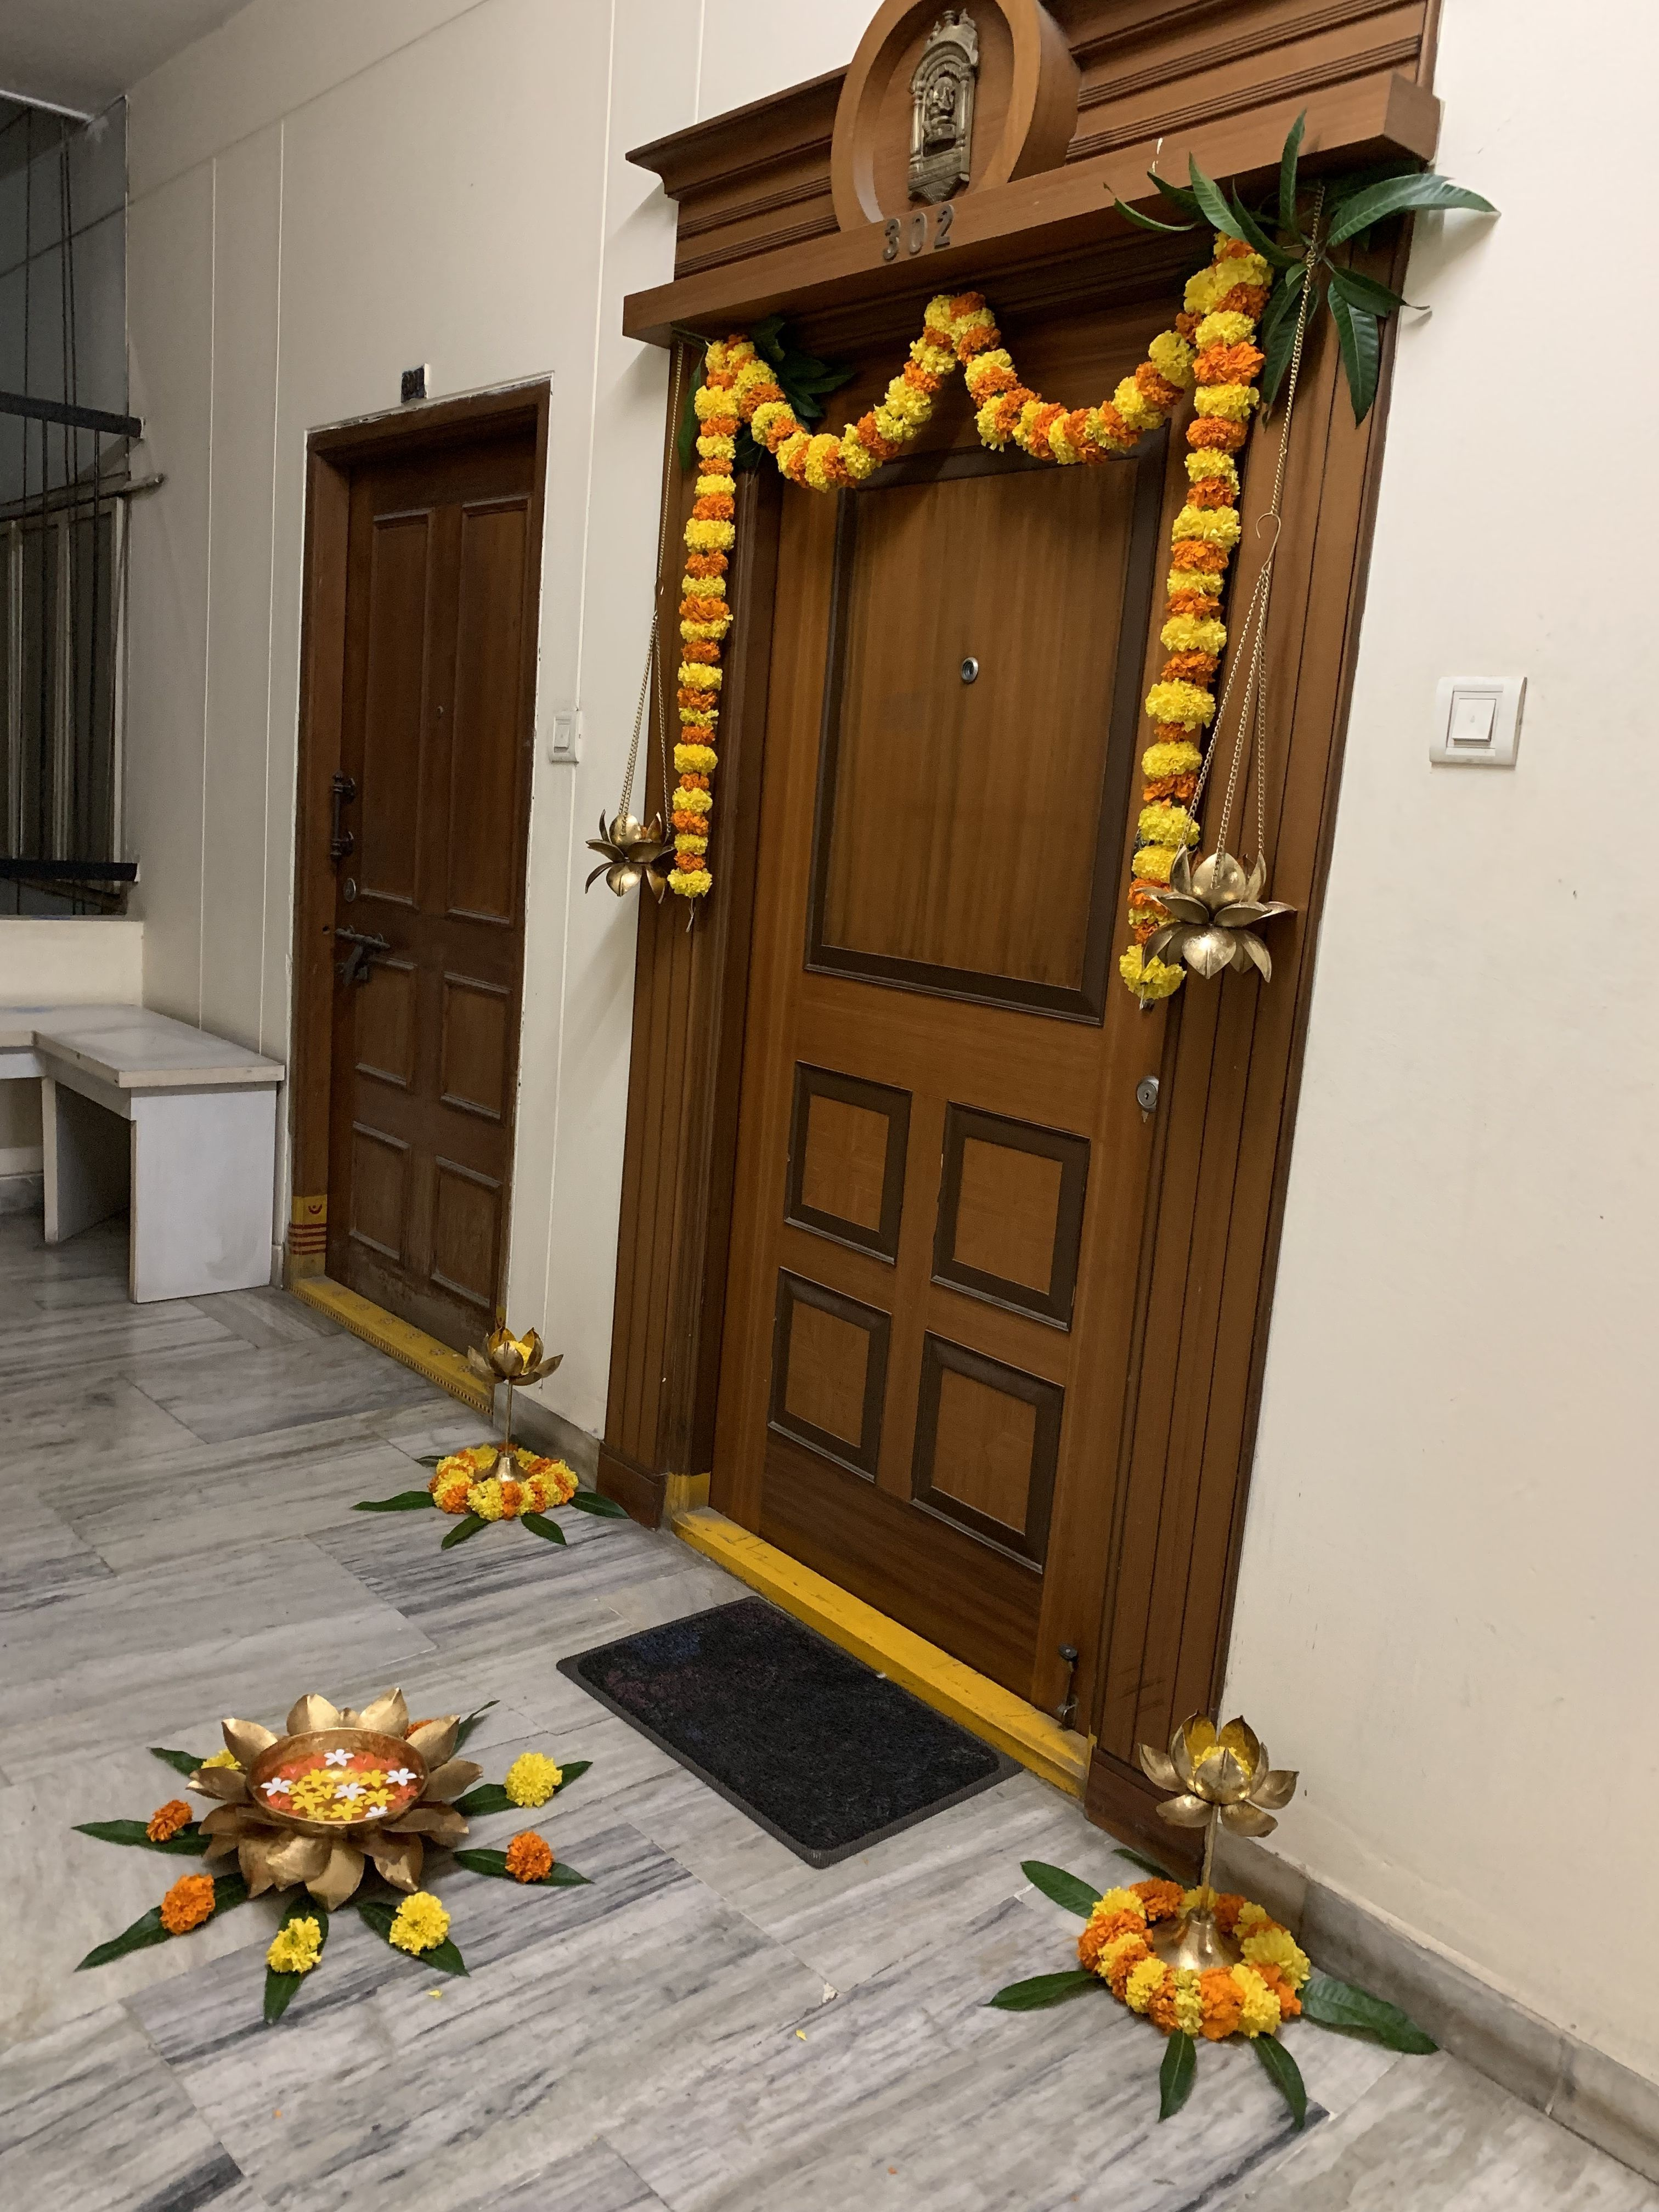 Diwalidecorationsathome Diwali Decorations At Home Pooja Room Door Design Home Entrance Decor